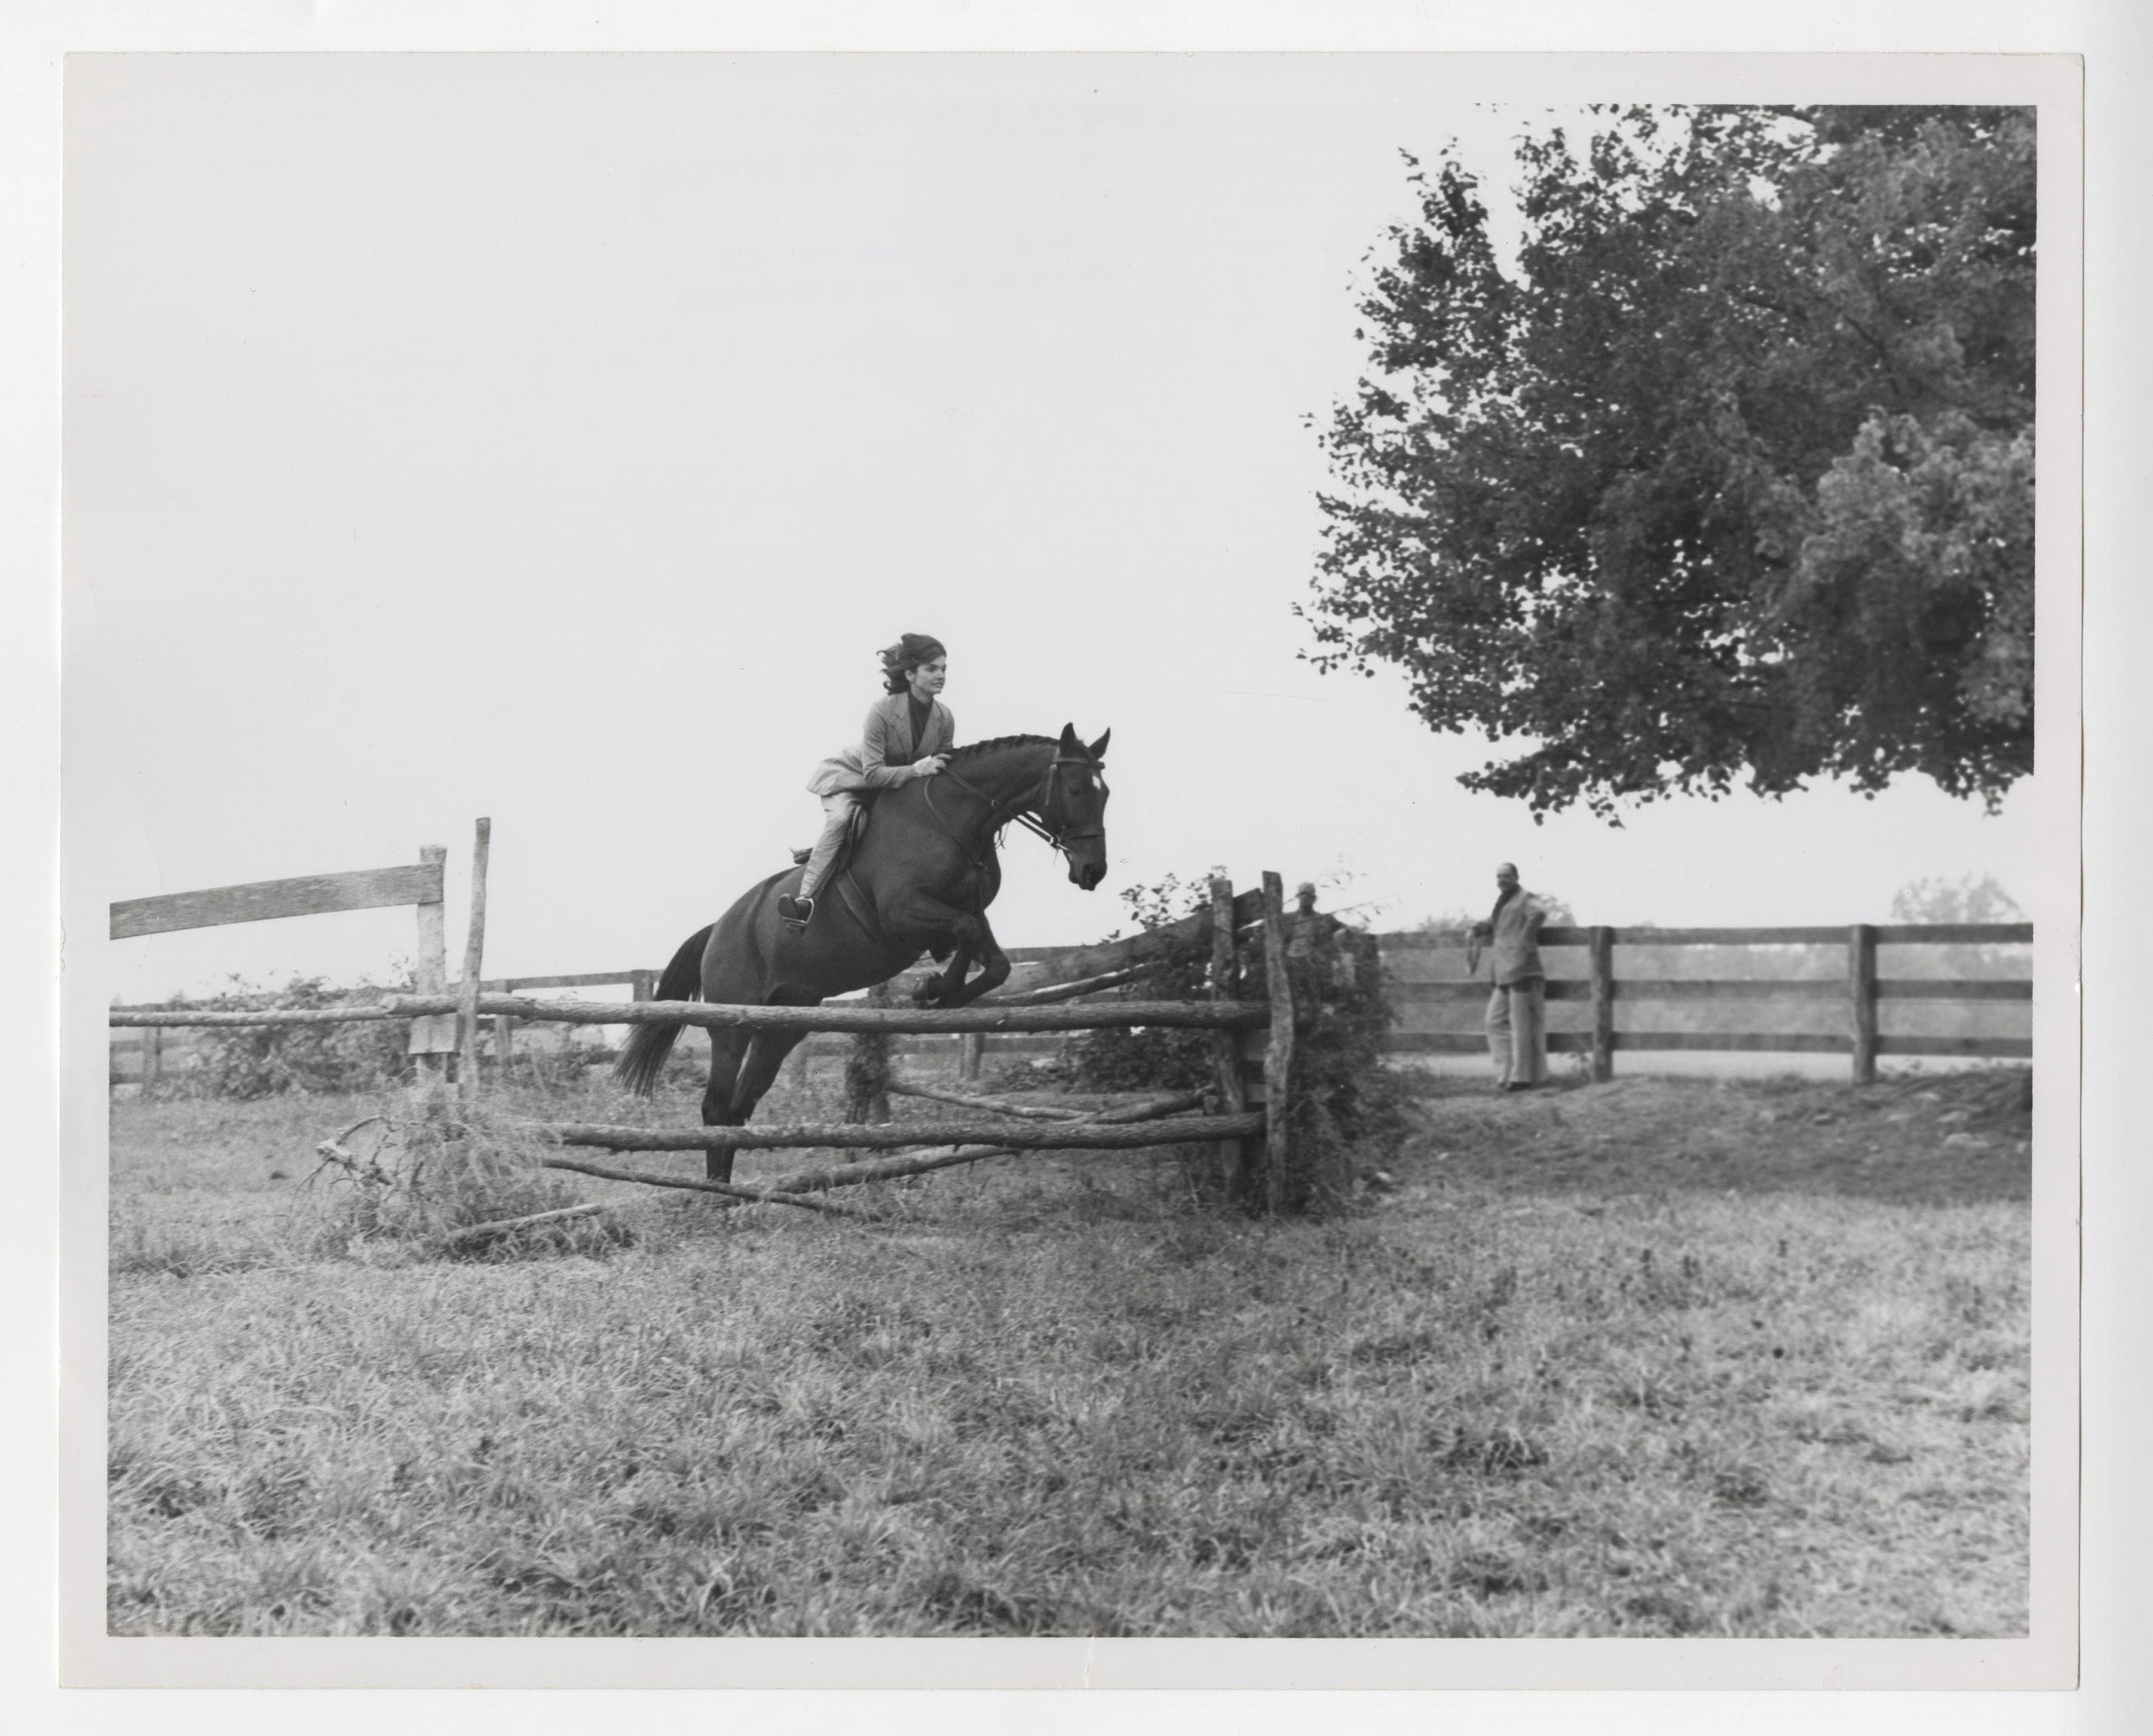 Jackie Kennedy Superb Vintage Photo of Practicing High Jumps With Her Horse